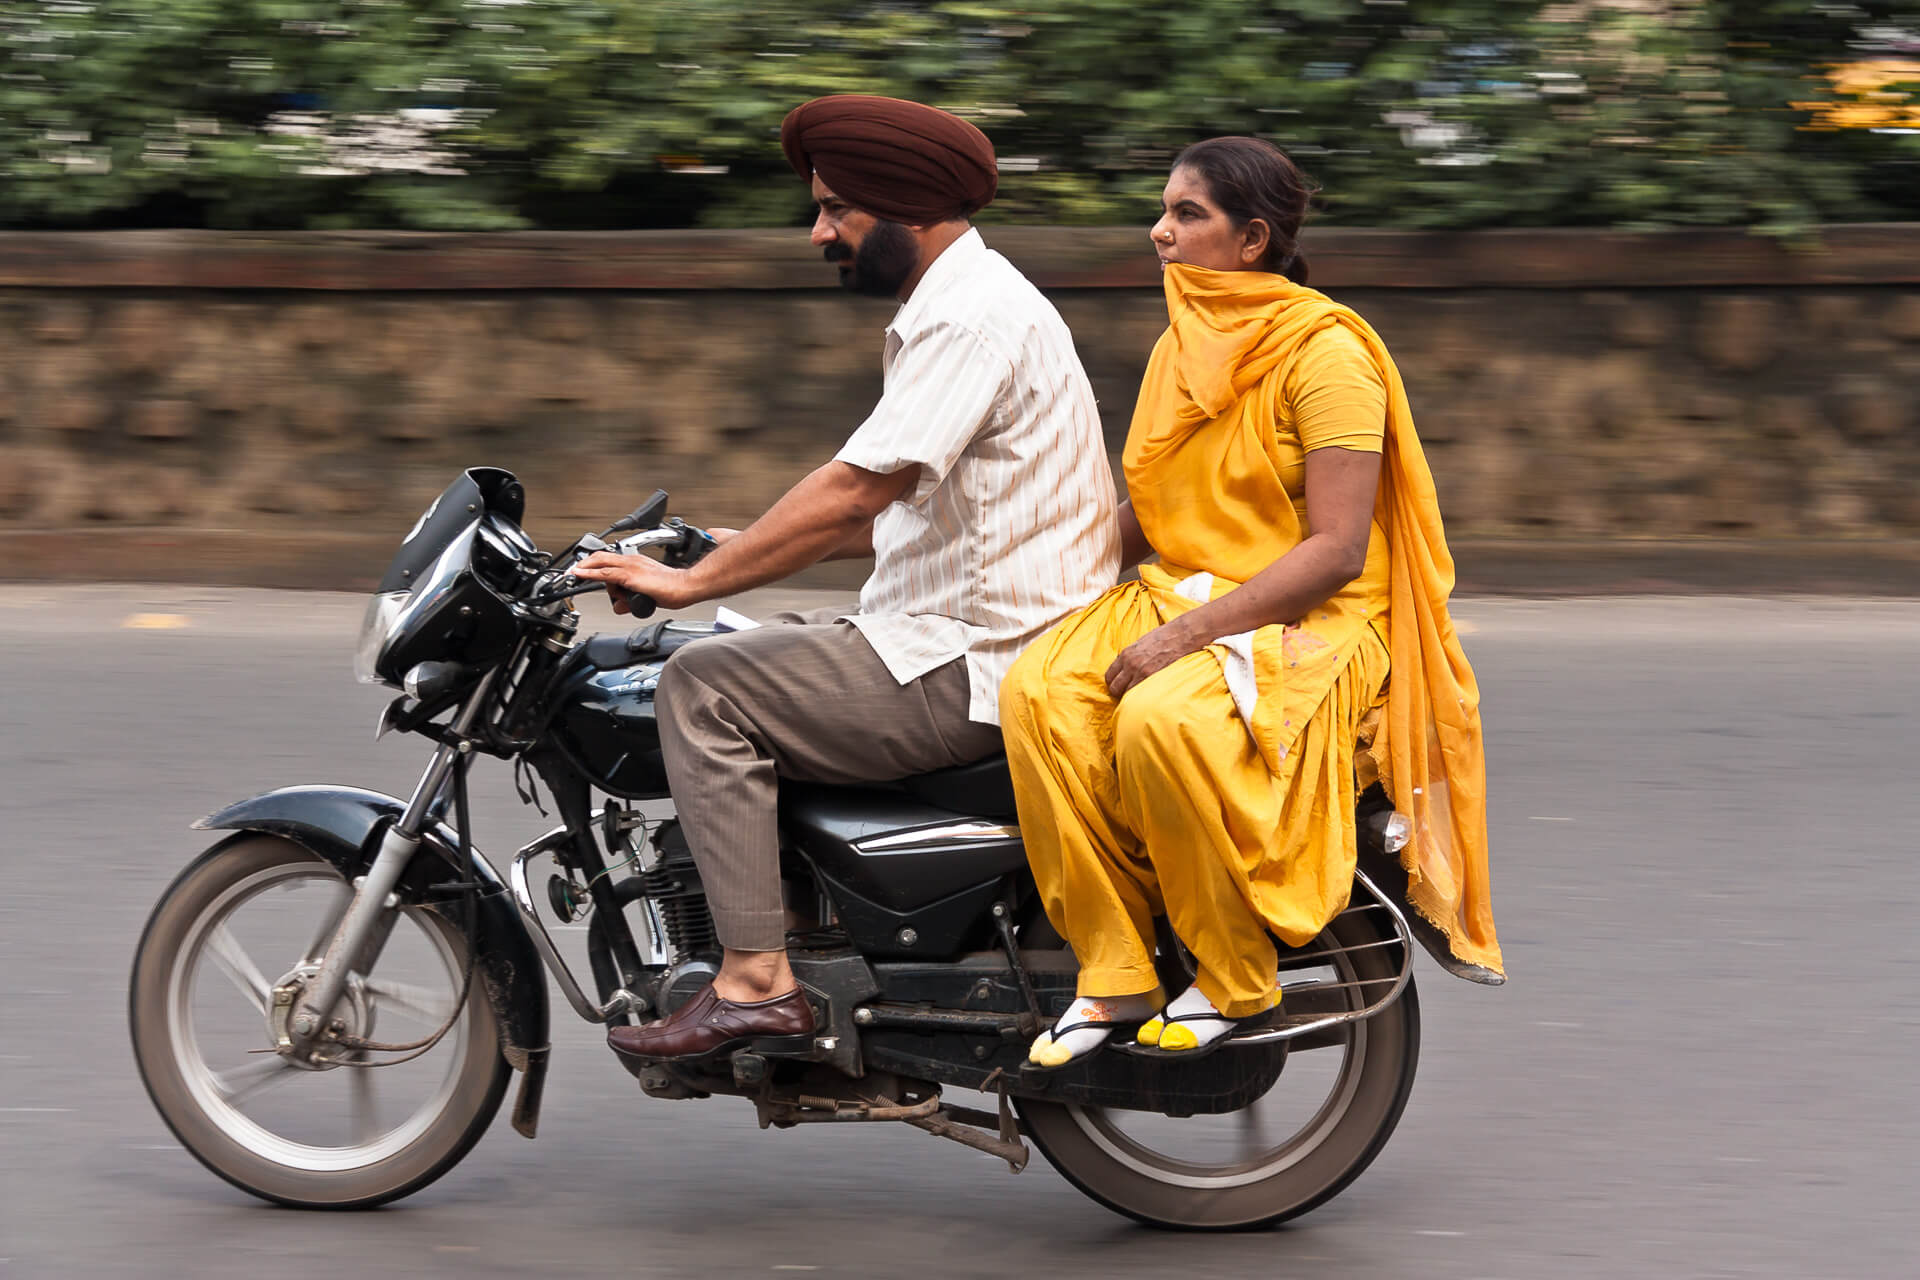 Sikh, Wife and Motorcycle | Streetfotografie in Kalkutta